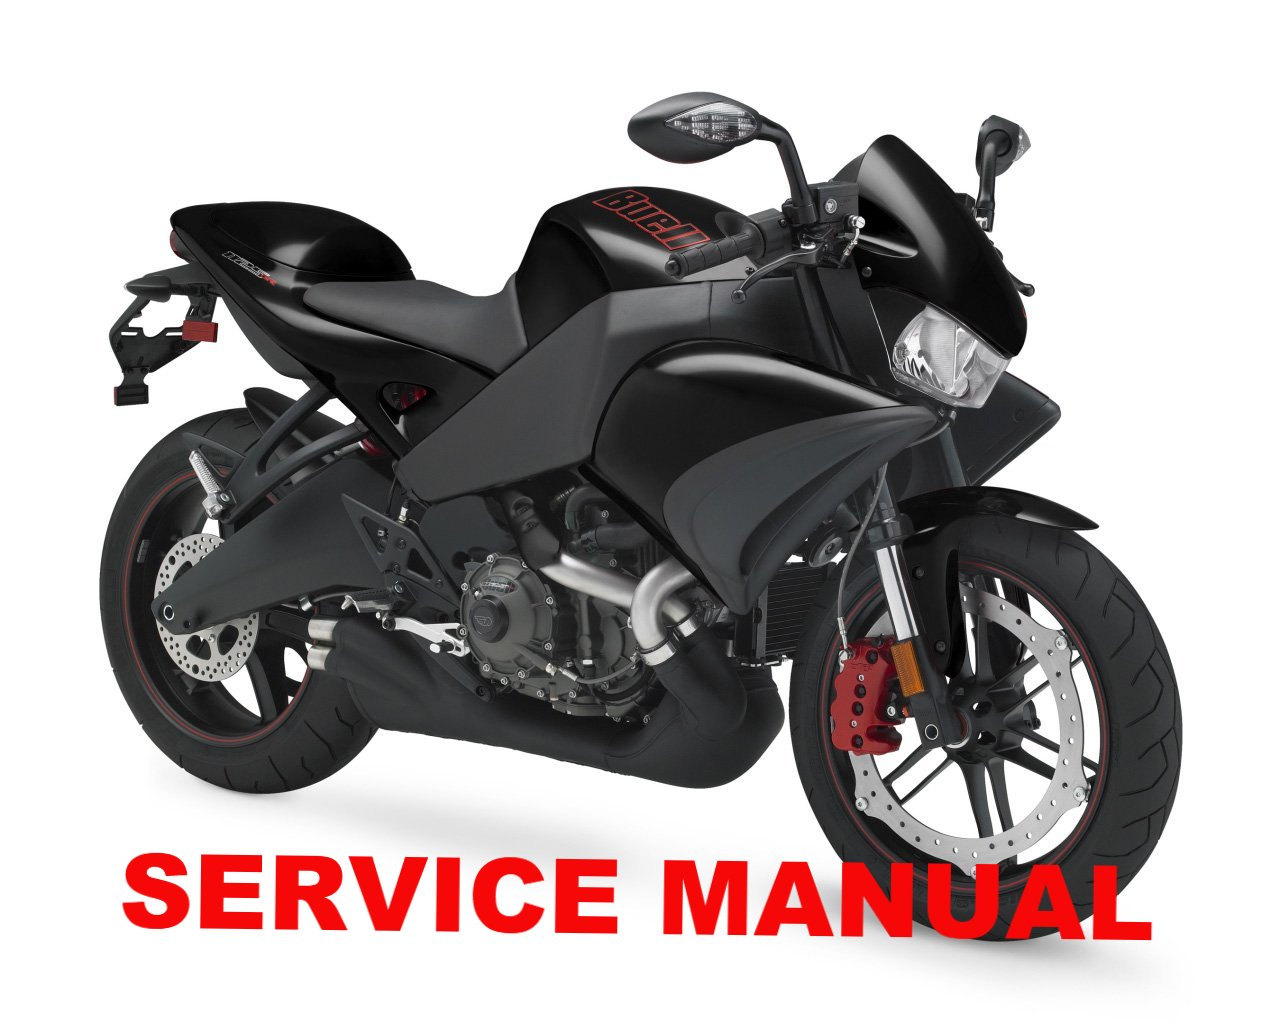 genuine buell 2008 2010 1125r 1125cr service manuals st paul rh st paul harley davidson buell myshopify com 2008 BMW X3 Repair Manual Descargar Manual Gratis De Ajedrez